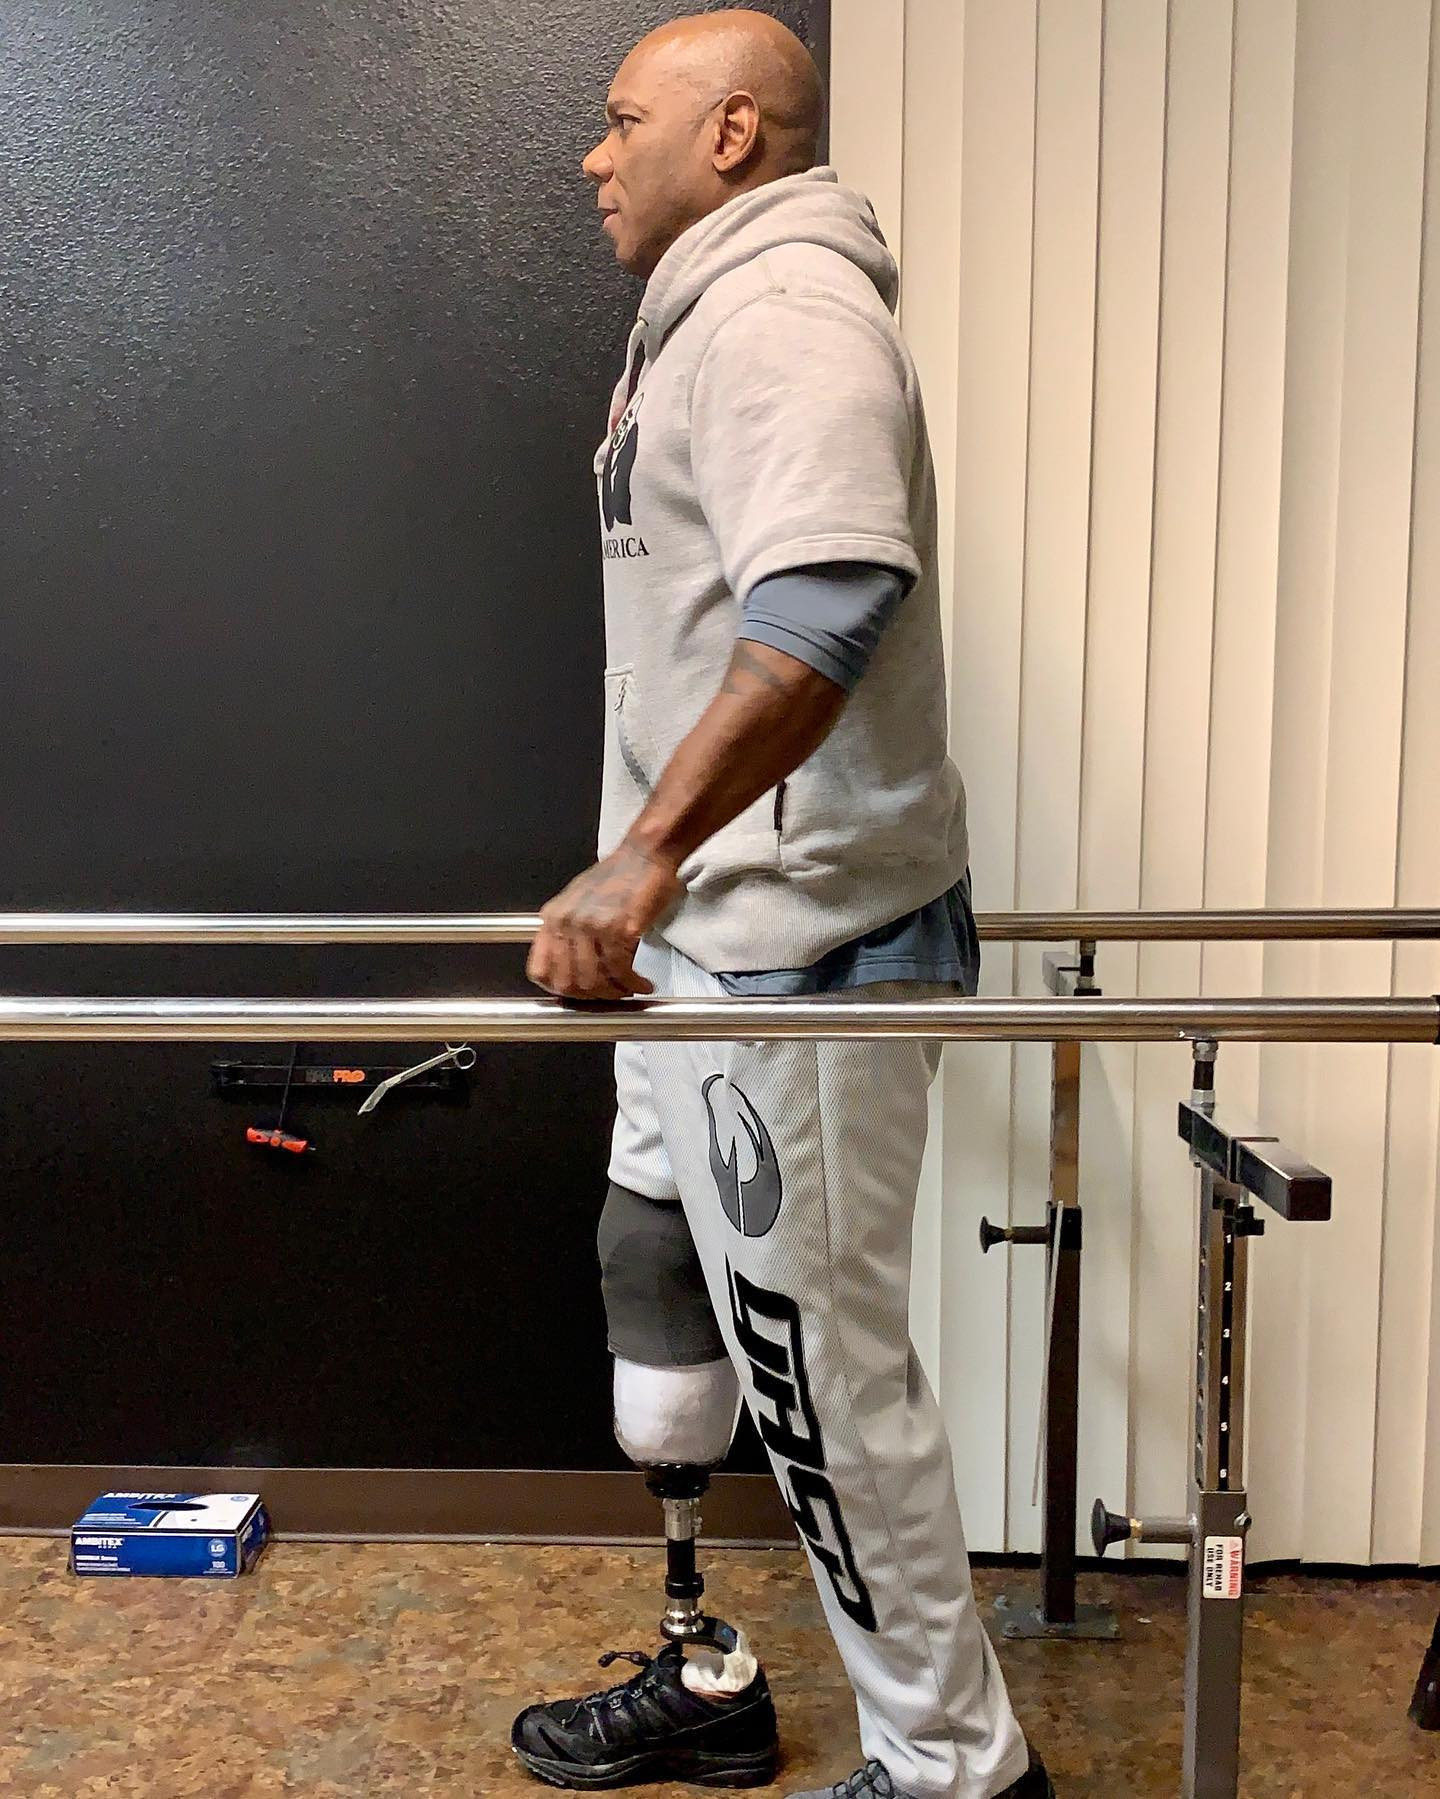 IFBB legend Wheeler begins recovery after losing leg